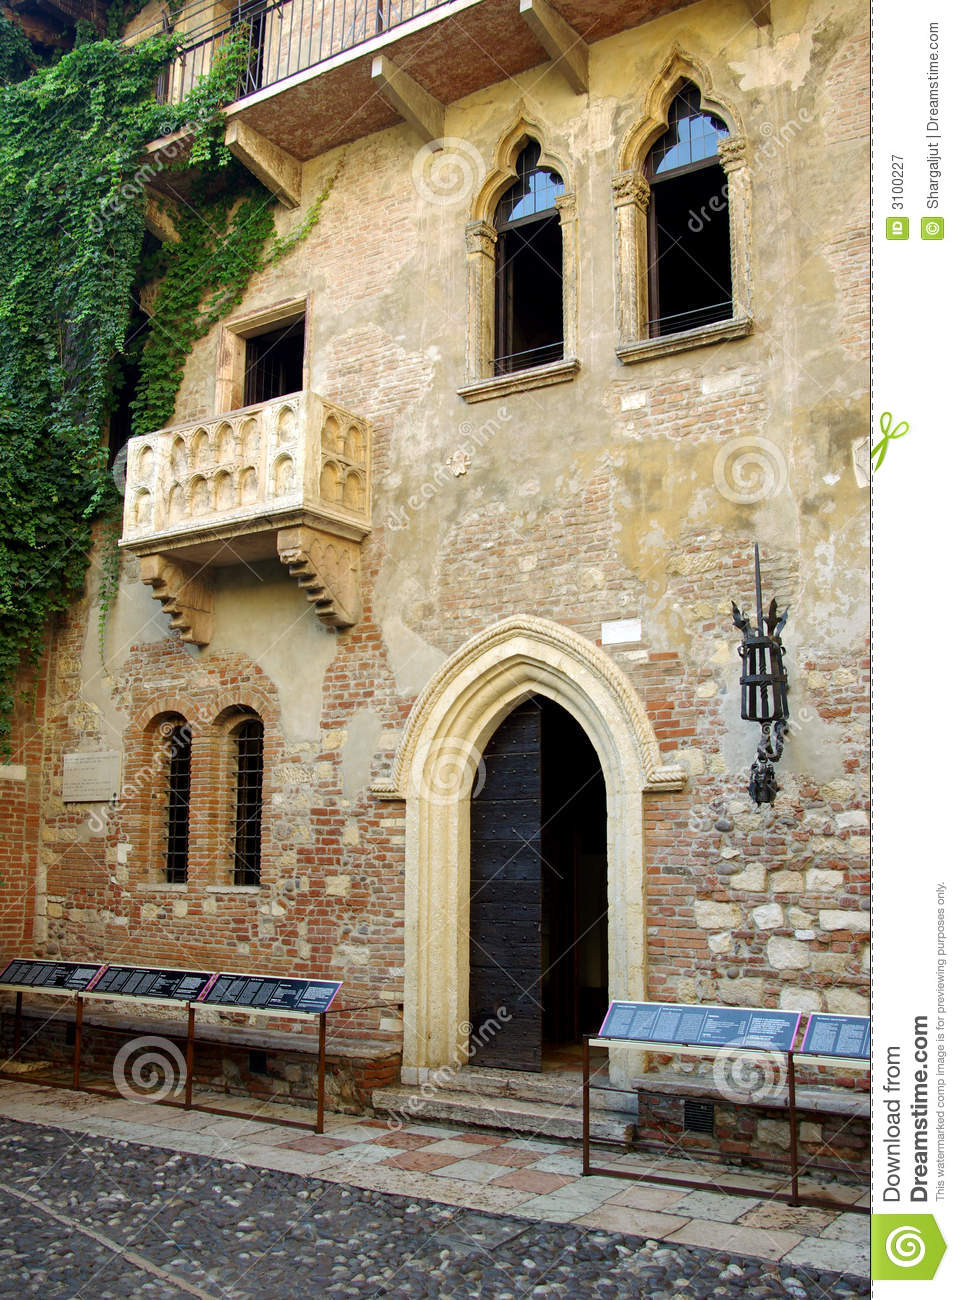 Juliets House Verona Italy Royalty Free Stock